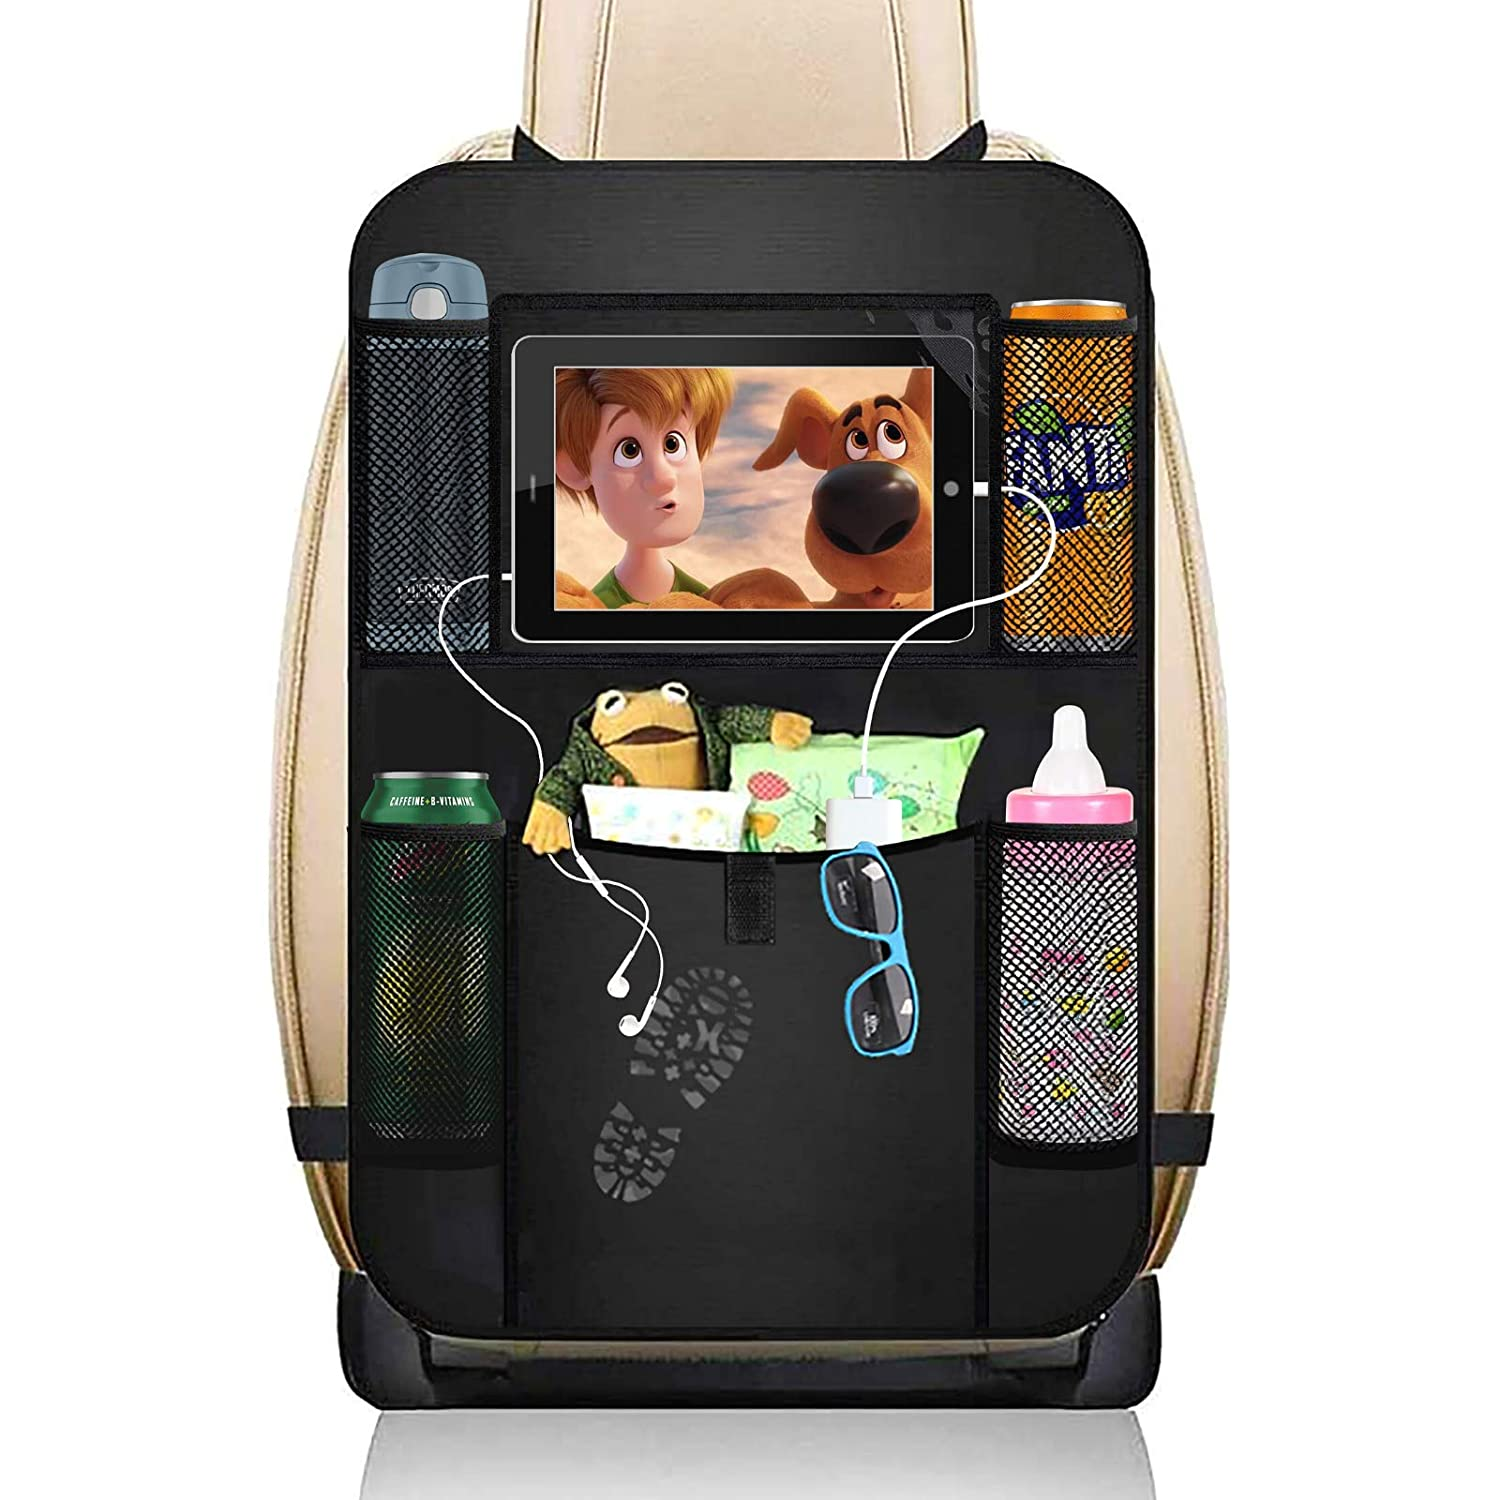 Nothomme Car Backseat Organizer - Seat Wholesale Baltimore Mall Or Back Multi-Pockets